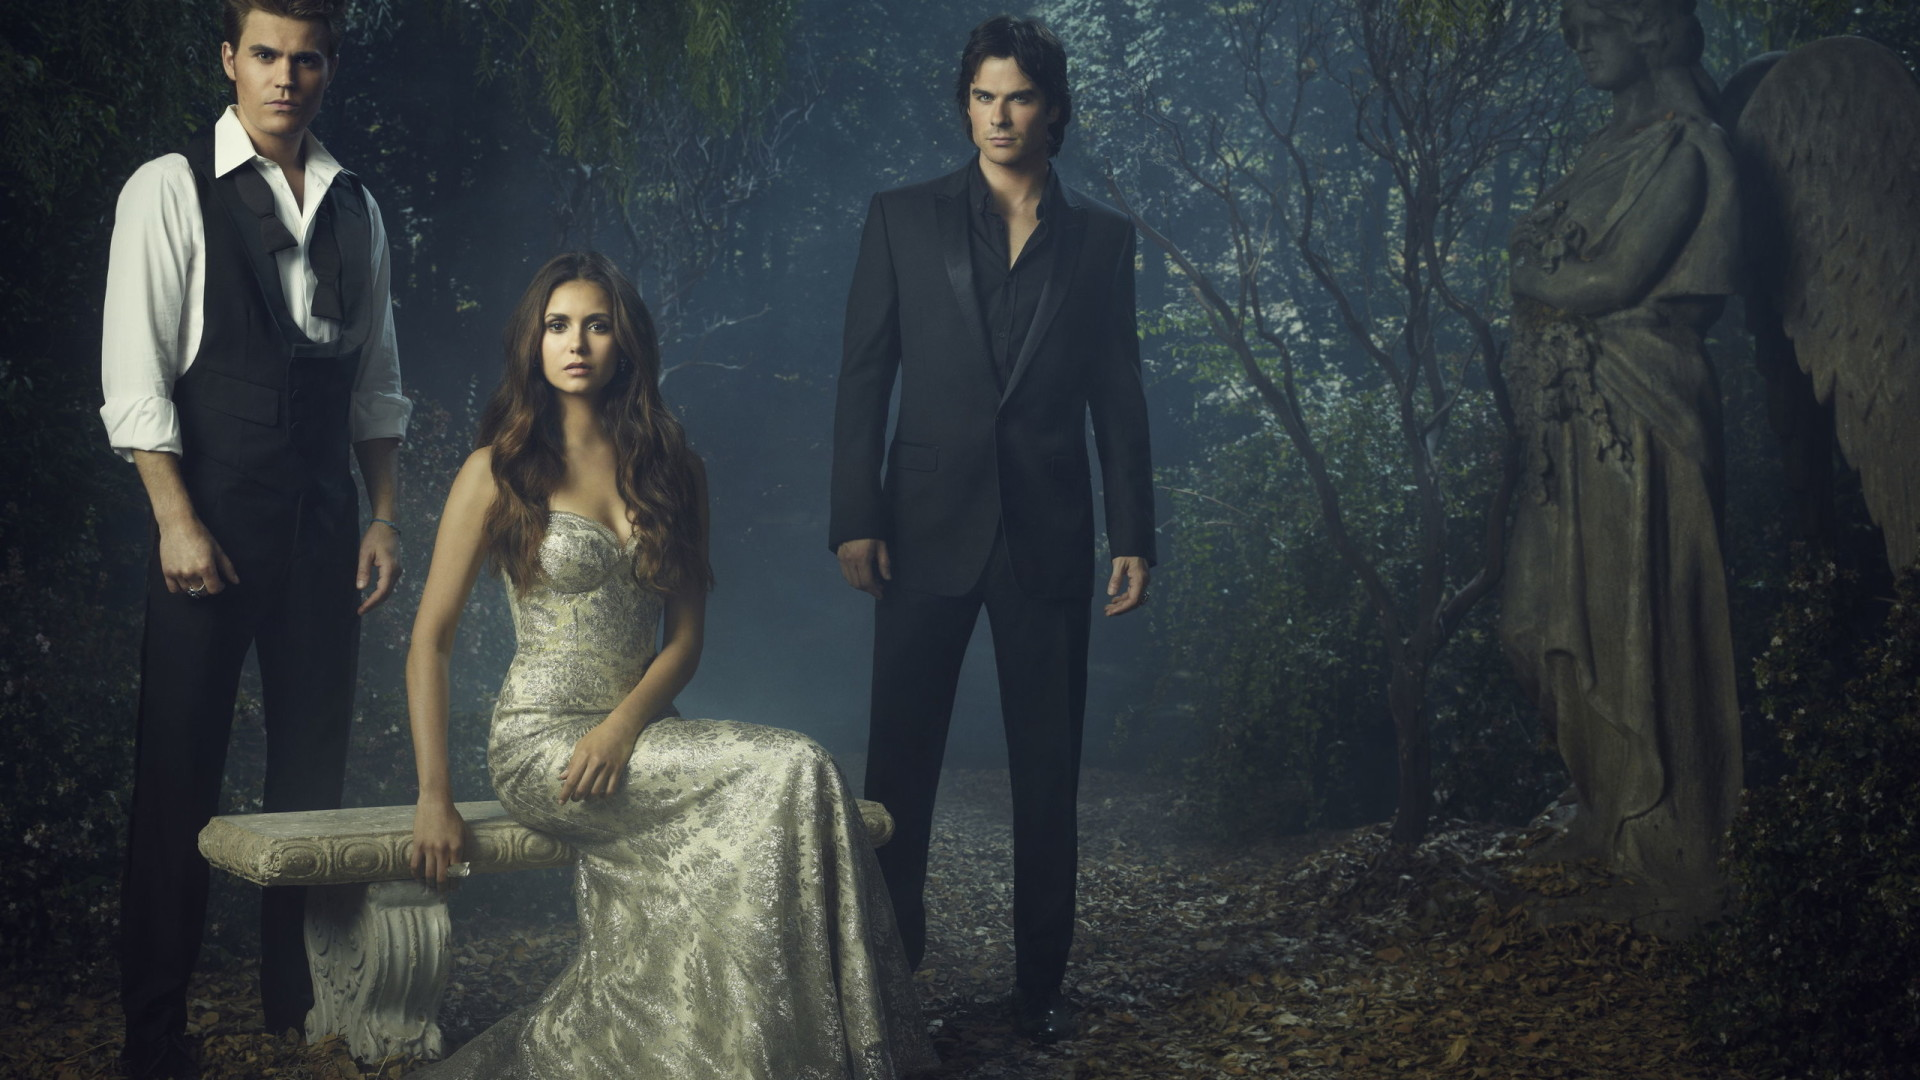 The Vampire Diaries Hd Wallpaper - Vampire Diaries Wallpaper Hd , HD Wallpaper & Backgrounds